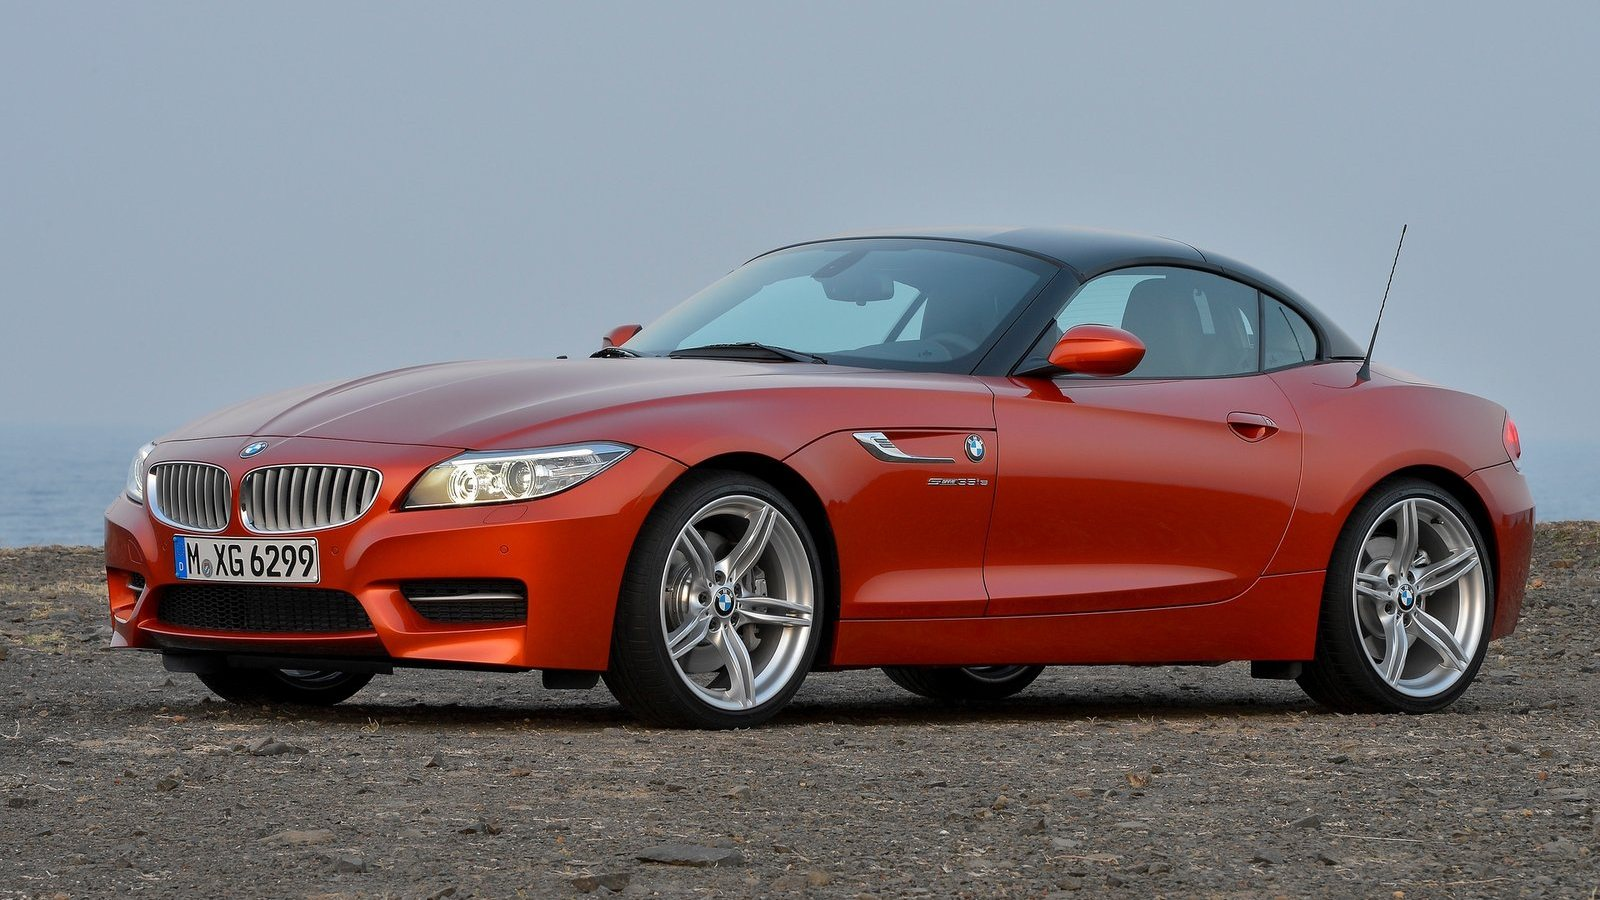 BMW Z4 Roadster Cars HD Wallpapers Download 1080p |Ultra ...